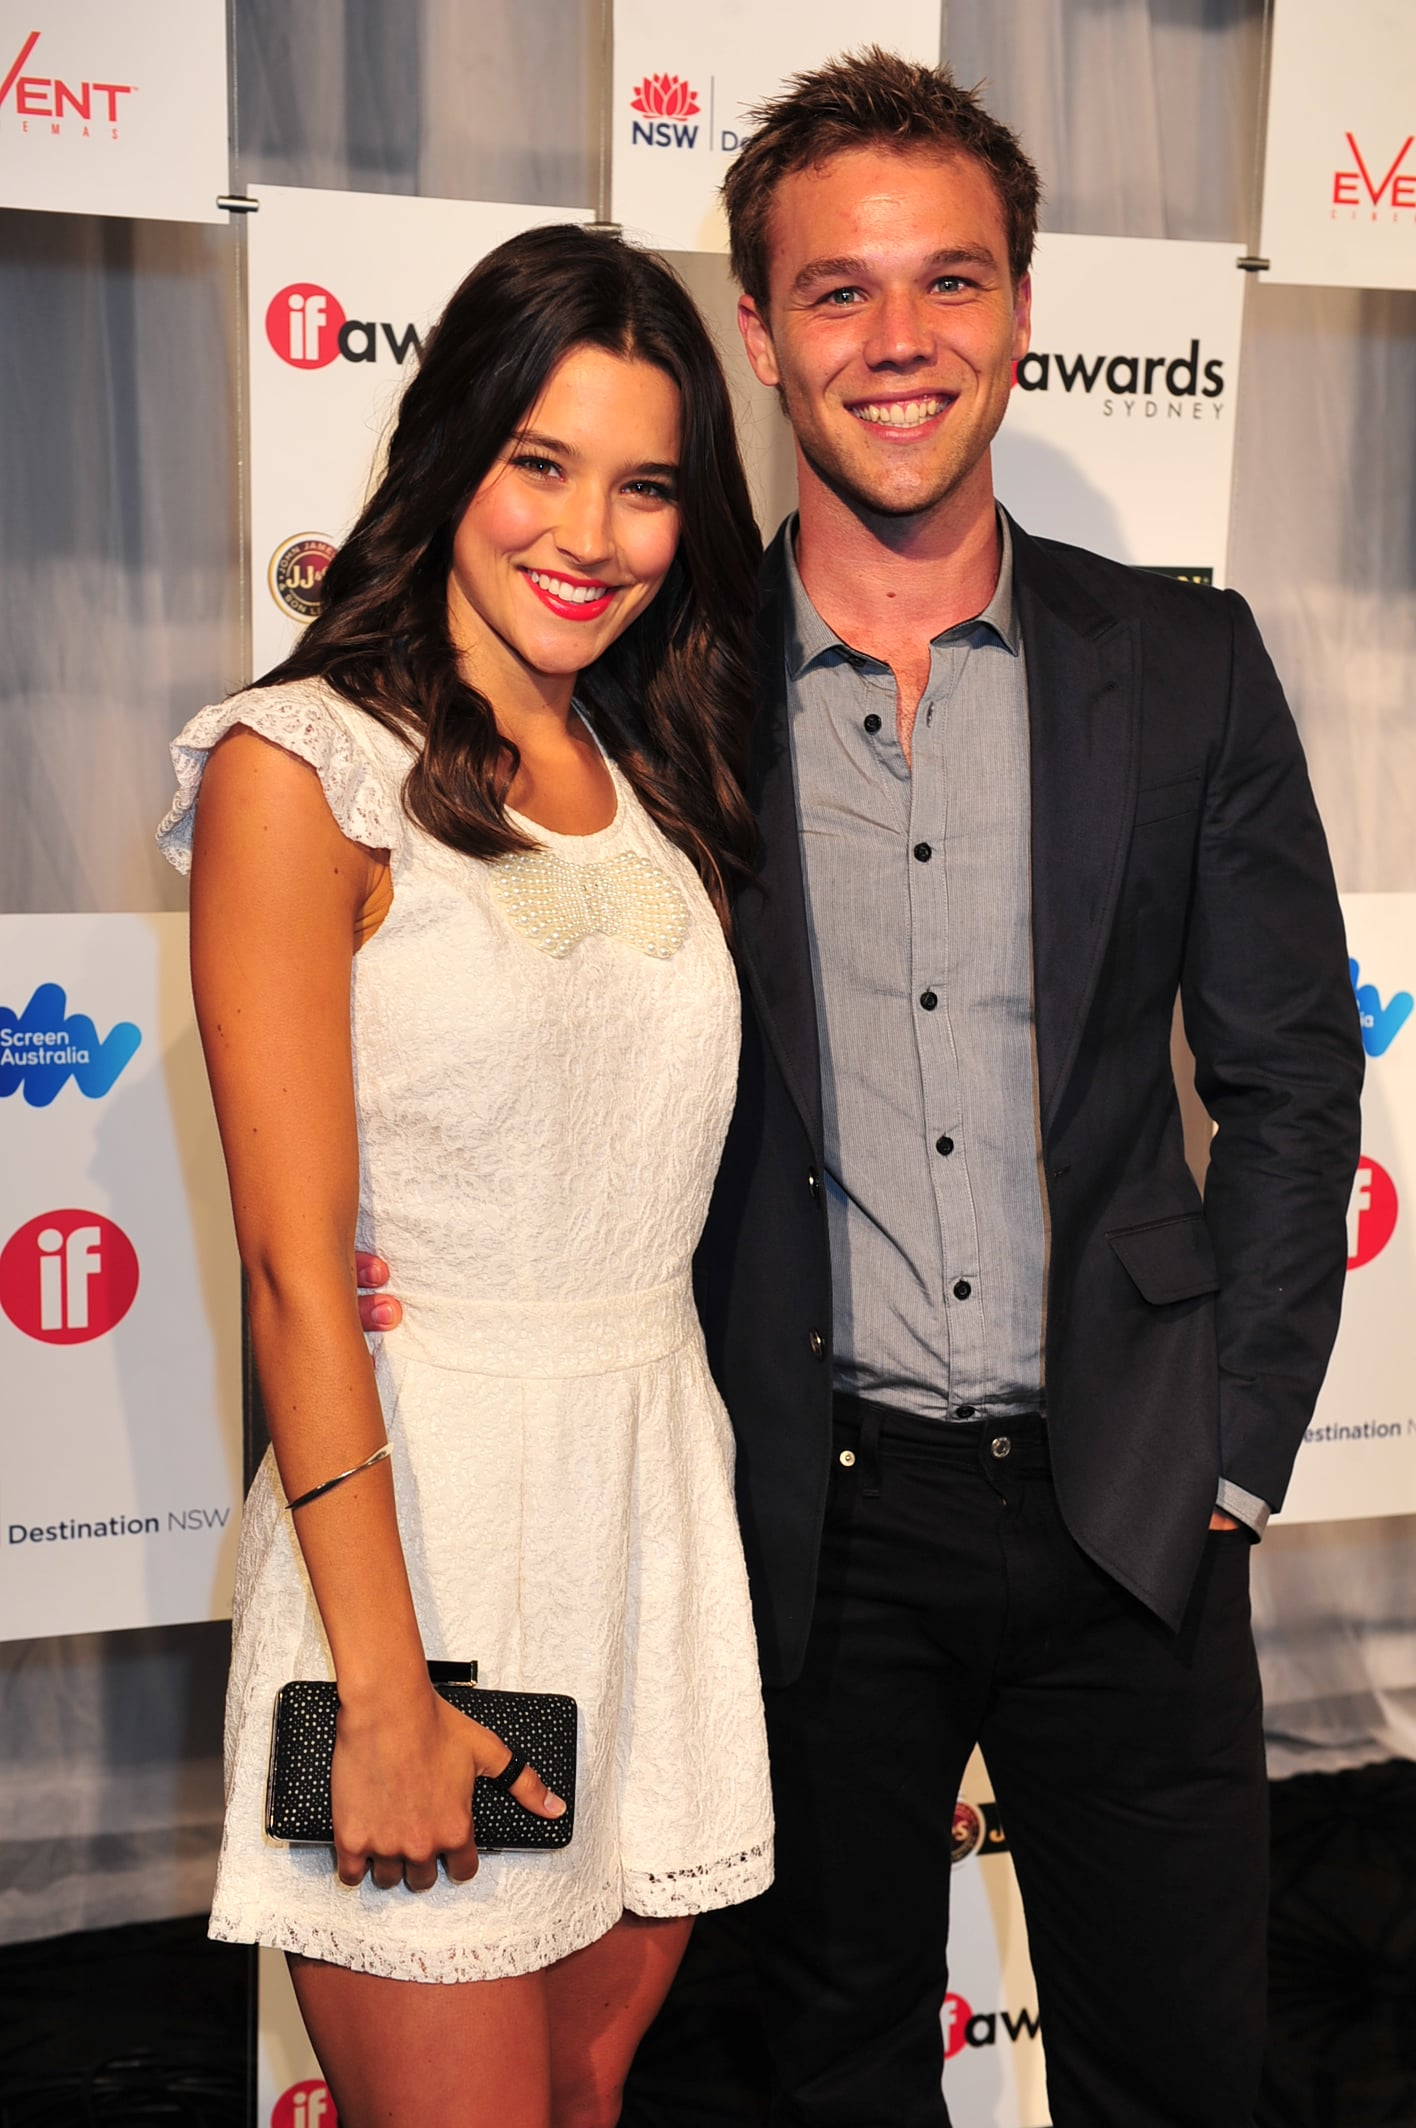 Rhiannon Fish and Lincoln Lewis